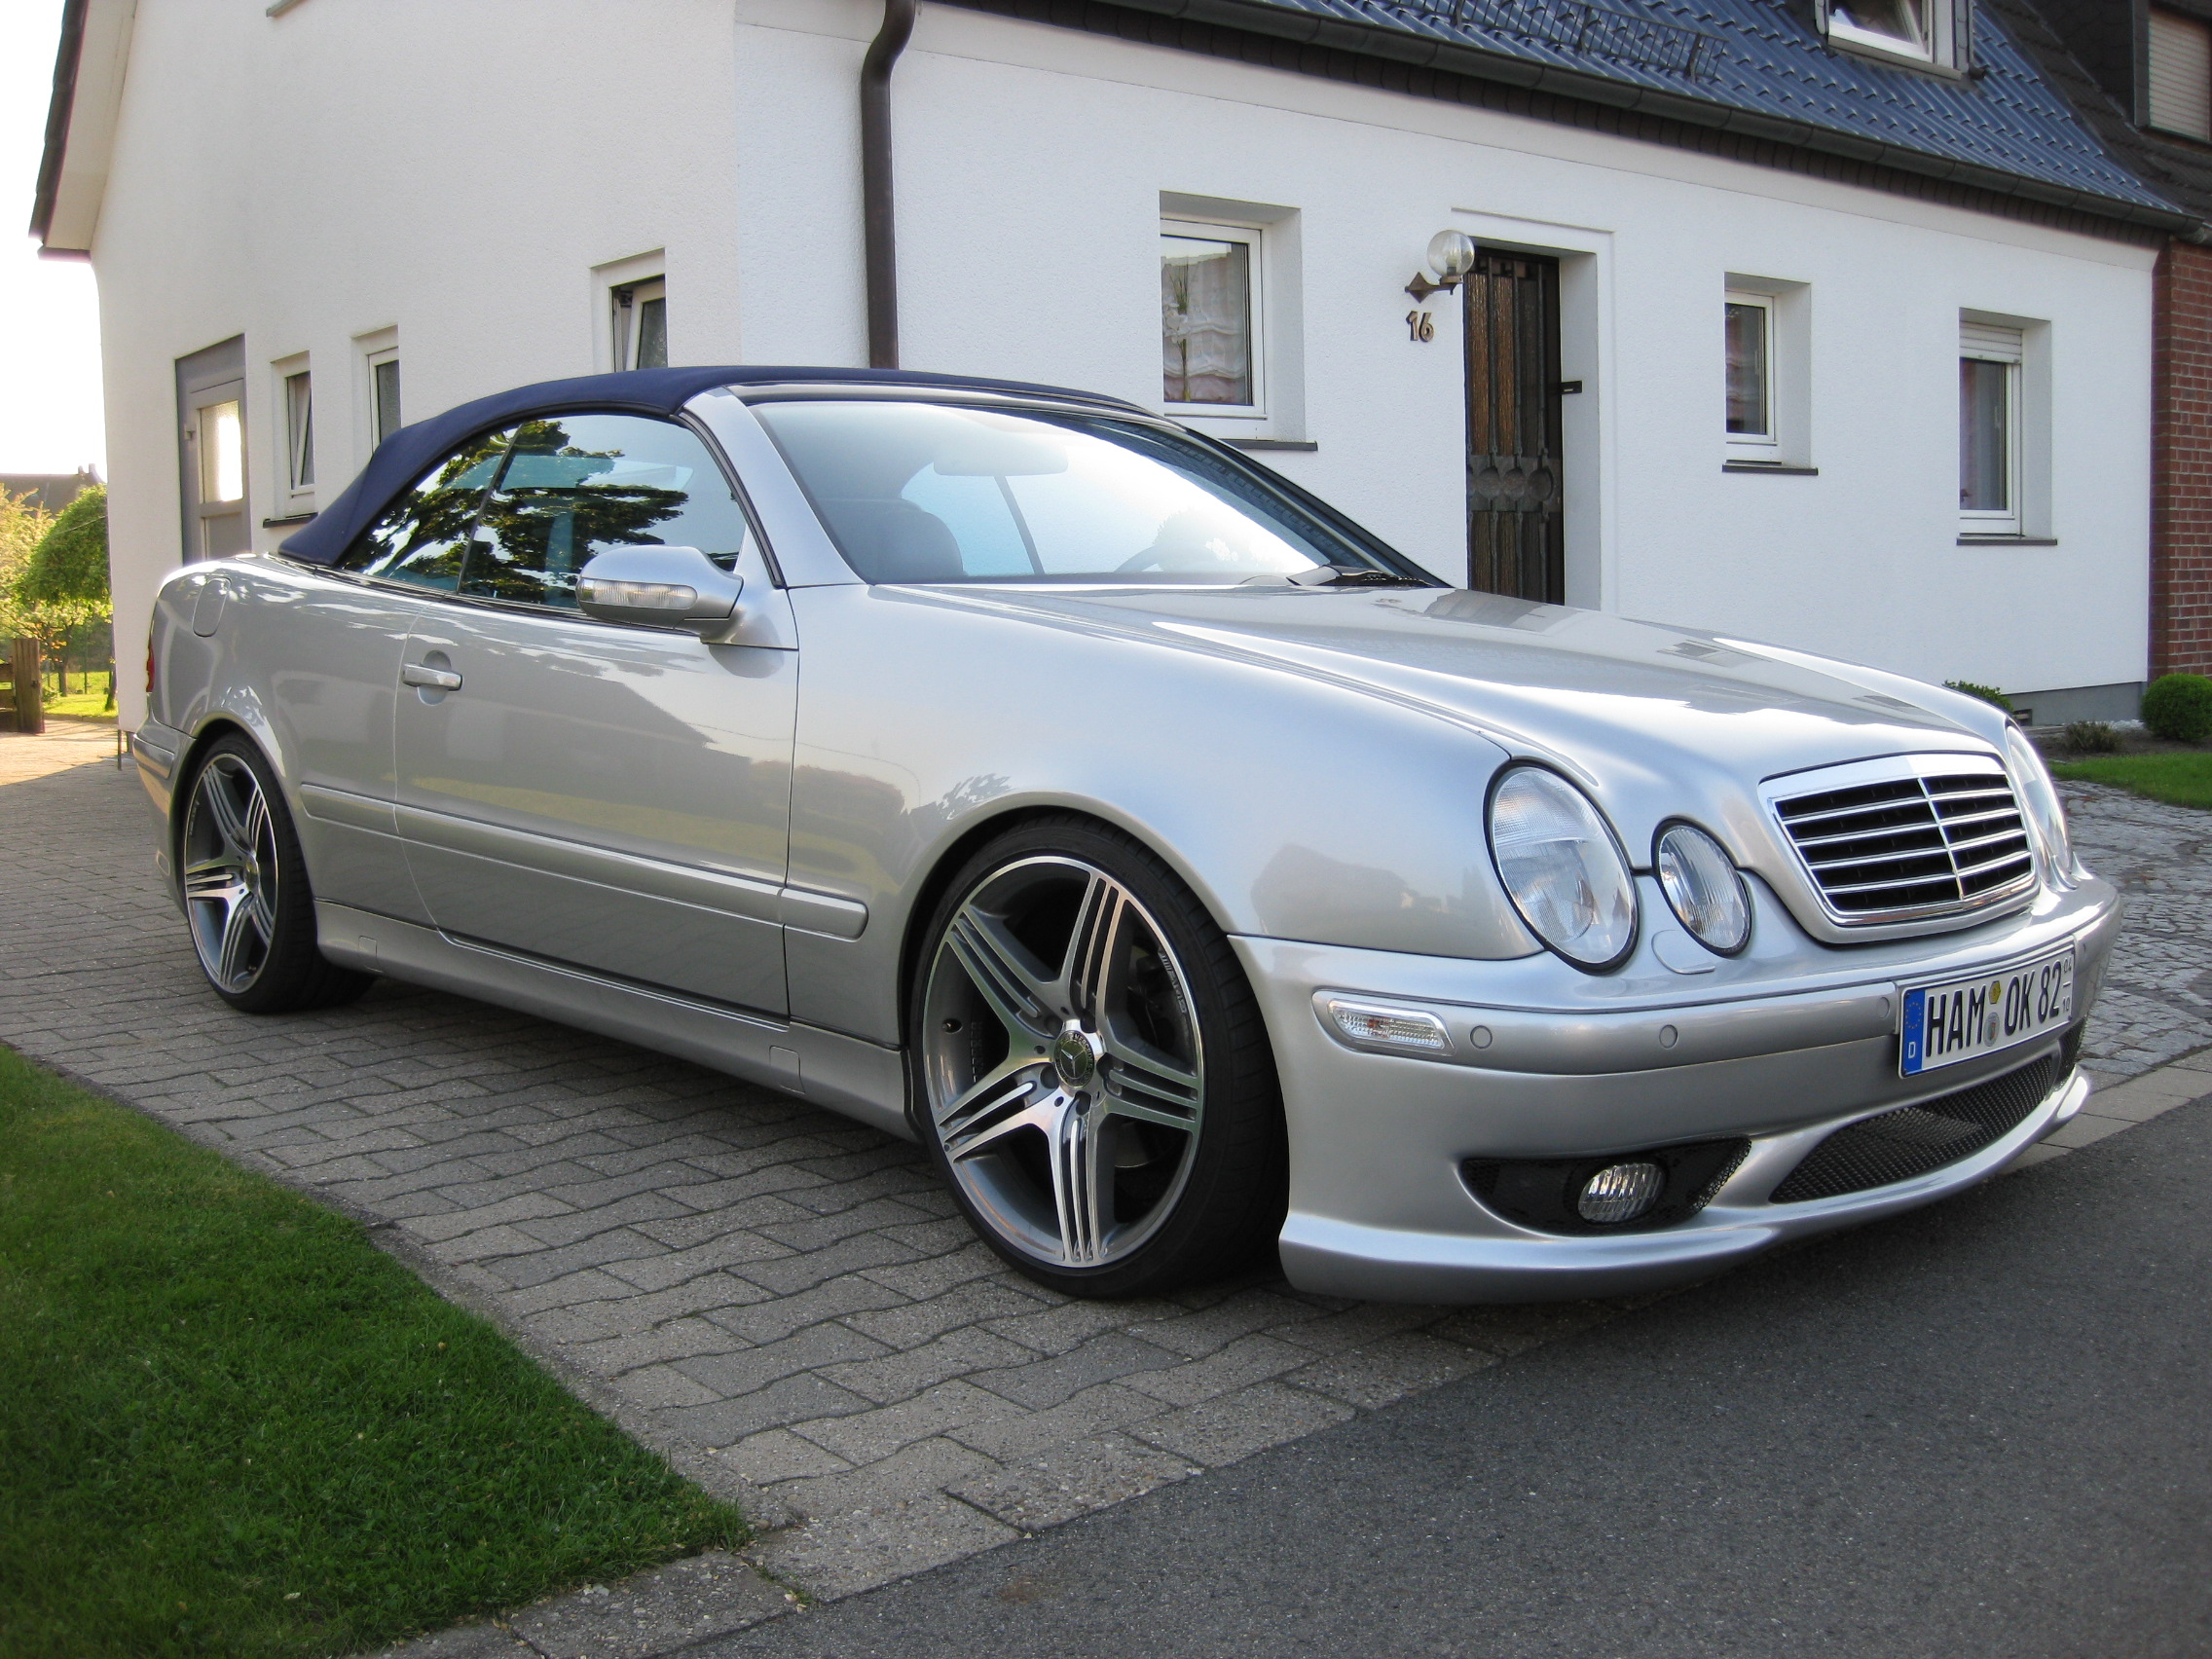 umbau clk winter 2009 tomason tn5 felgen mercedes clk. Black Bedroom Furniture Sets. Home Design Ideas